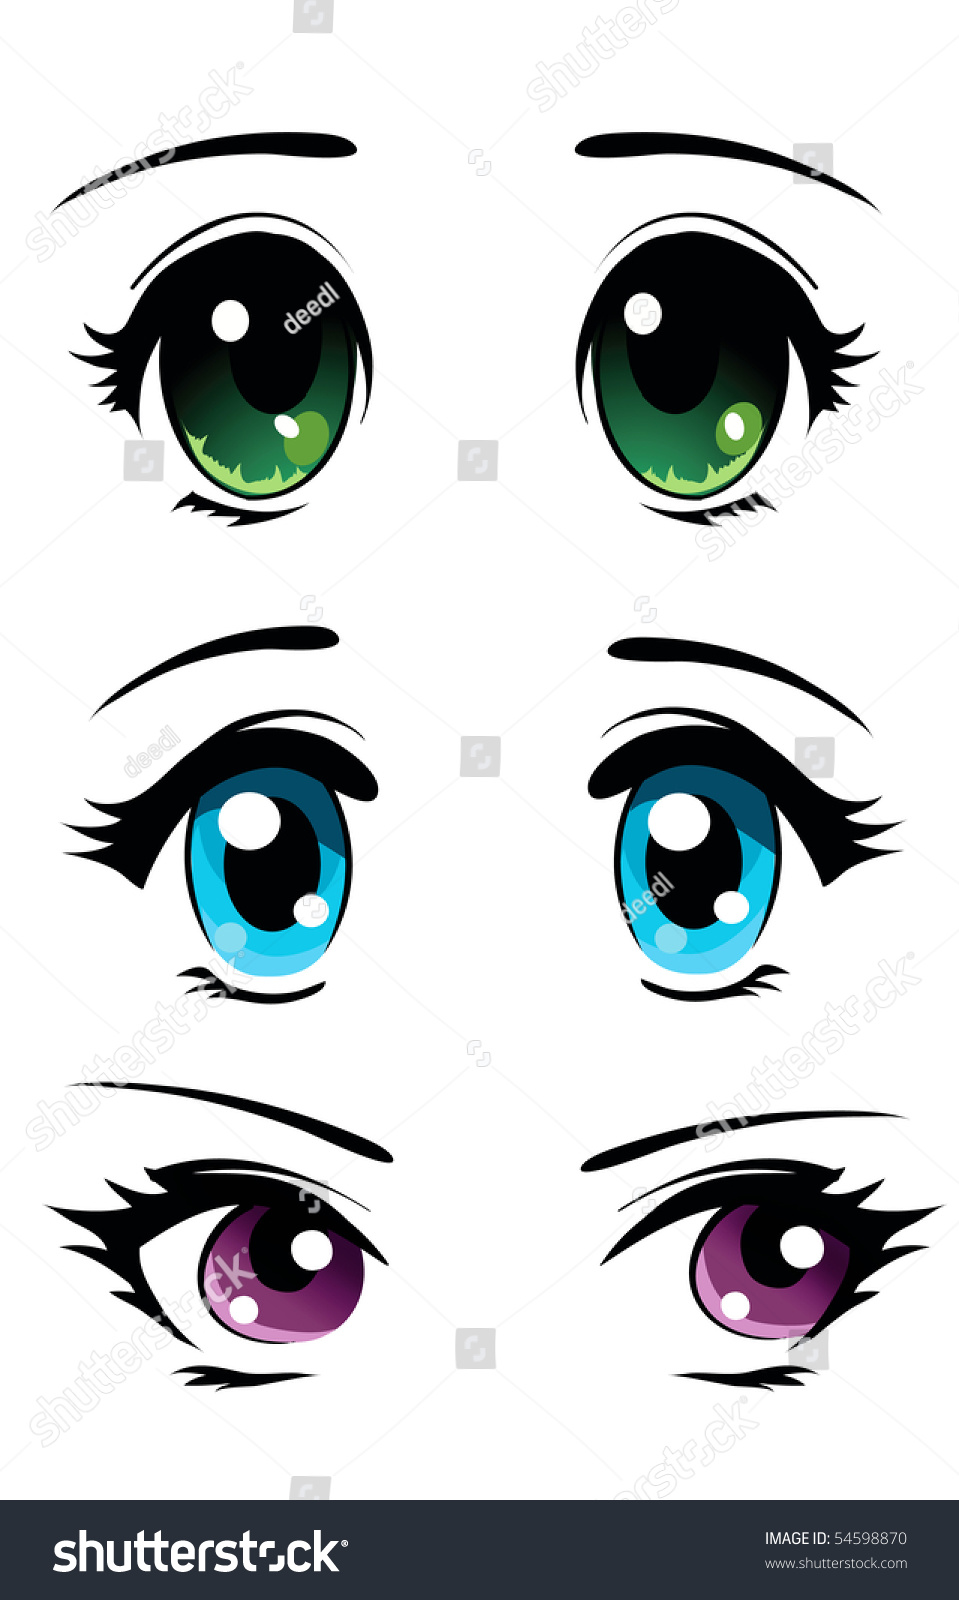 Set Of Cartoon Anime Eyes Stock Vector 54598870 : Shutterstock